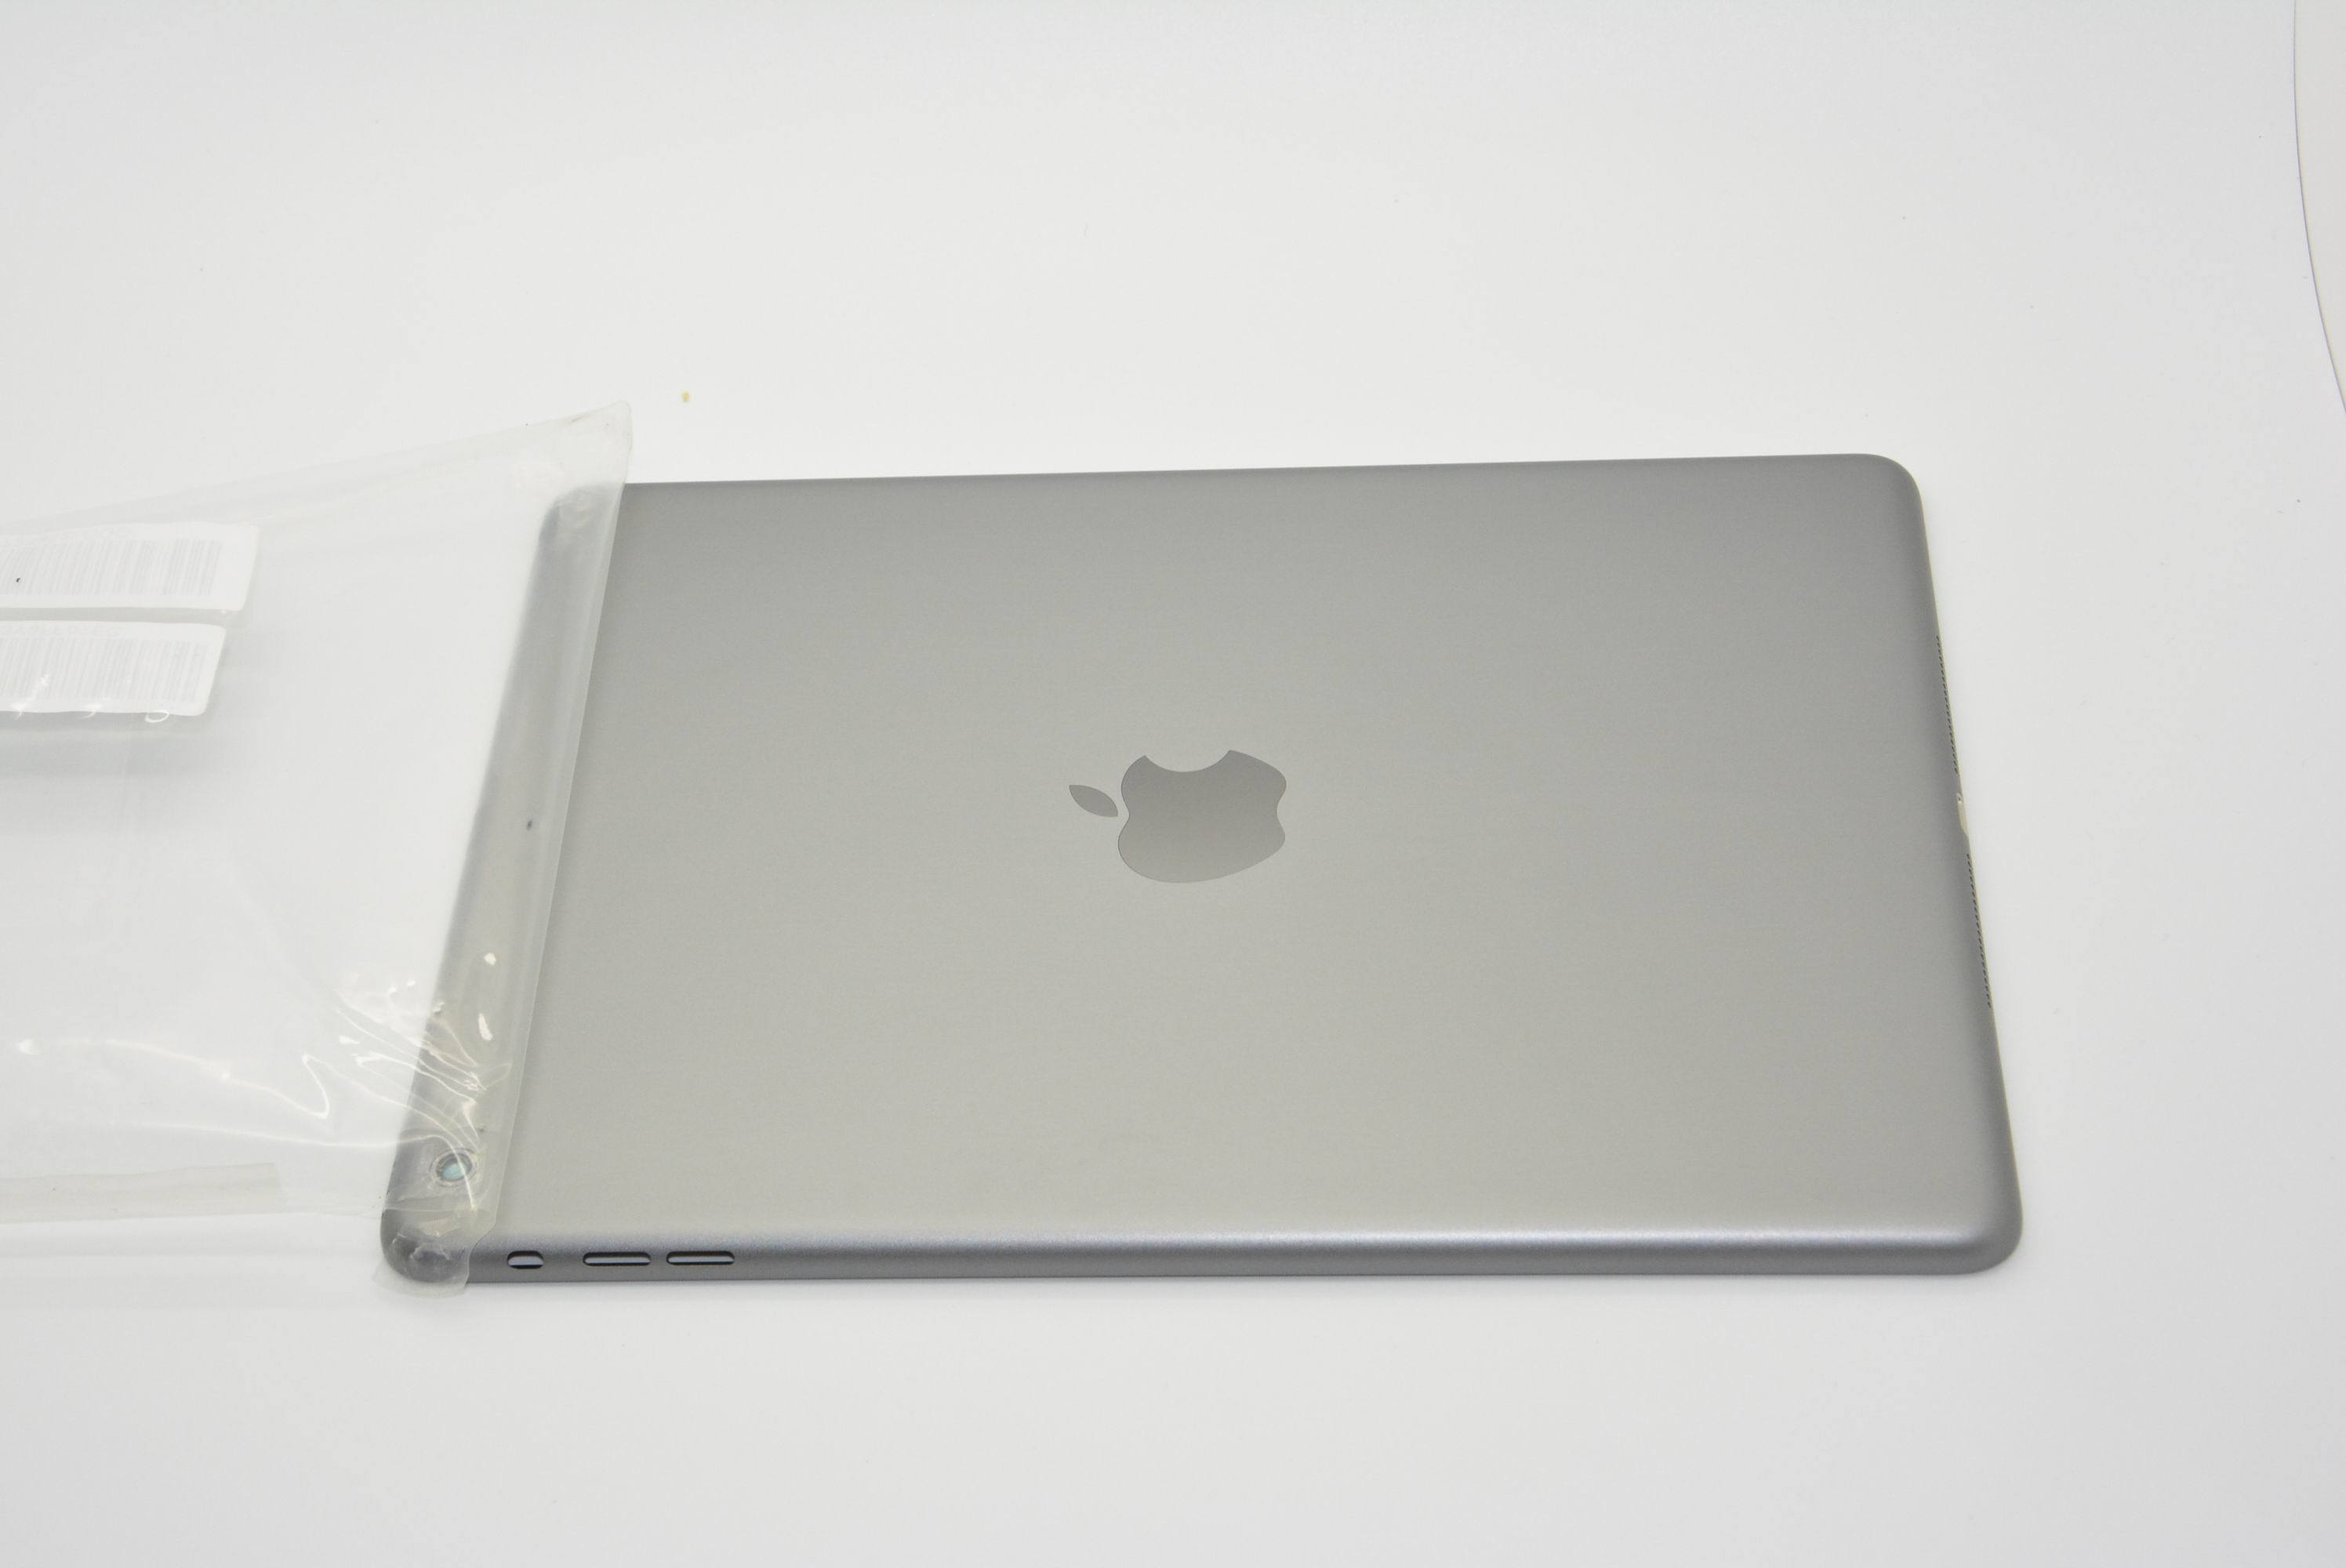 New-space-gray-Apple-iPad-5-tablet (5)